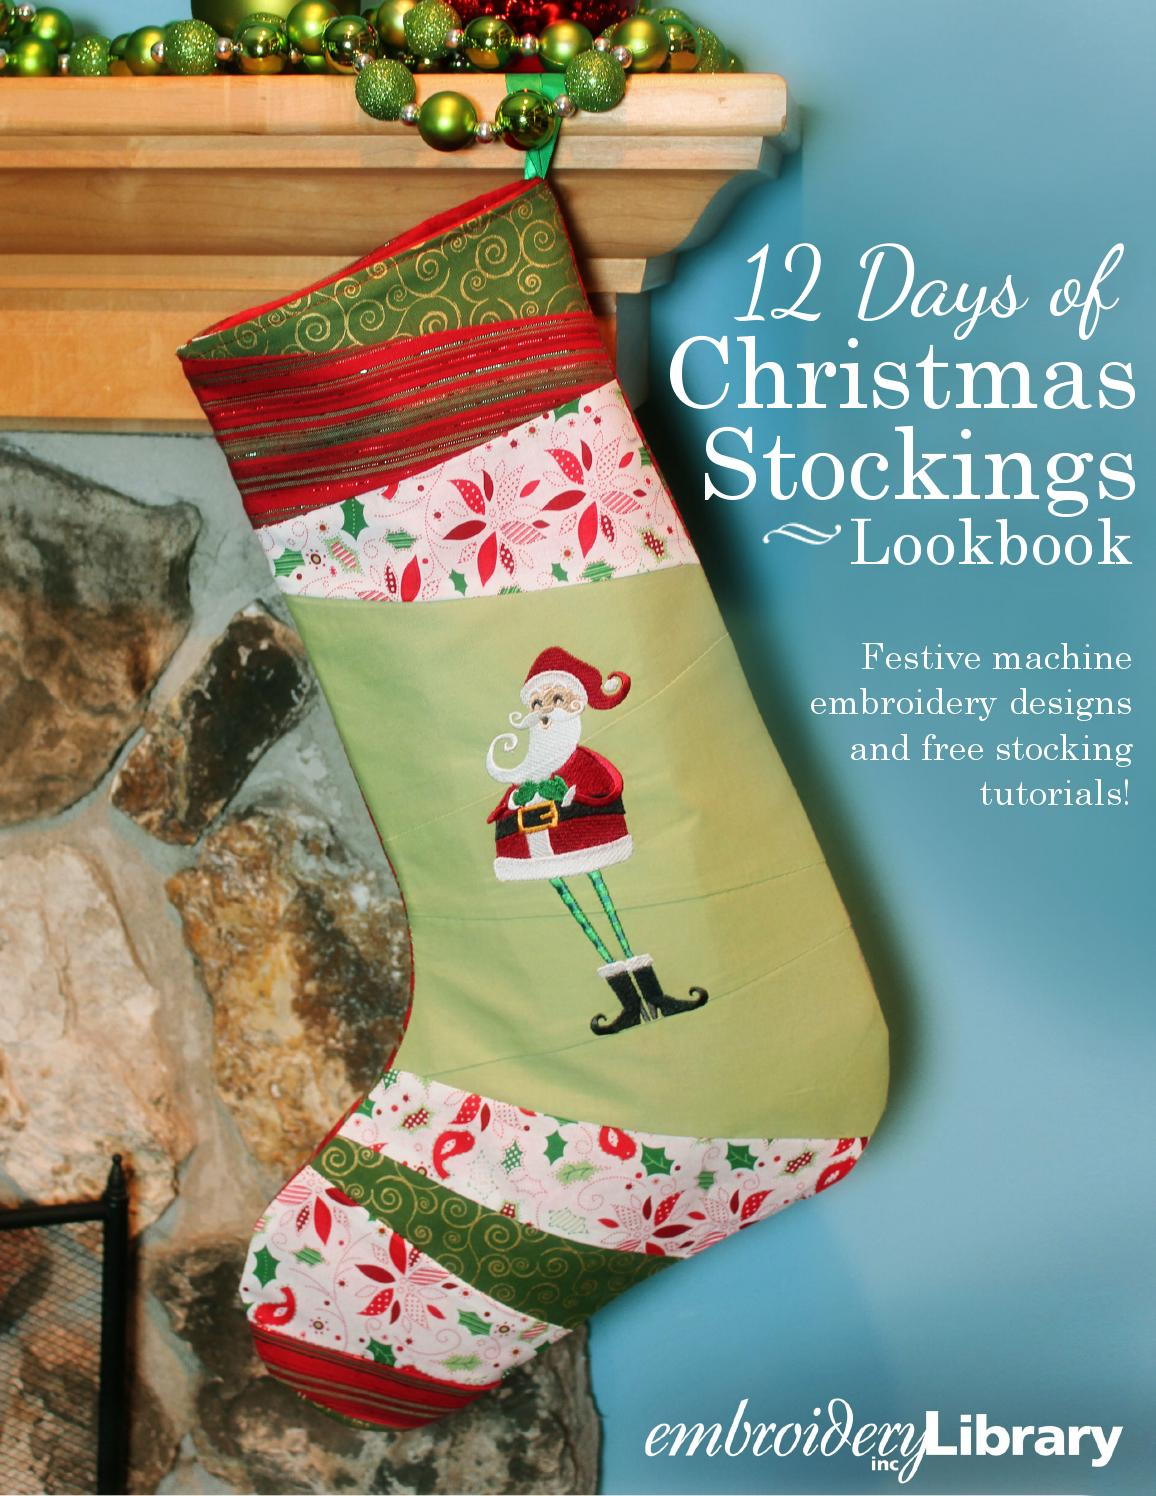 Embroidery Library 12 Days Of Christmas Stockings Lookbook By